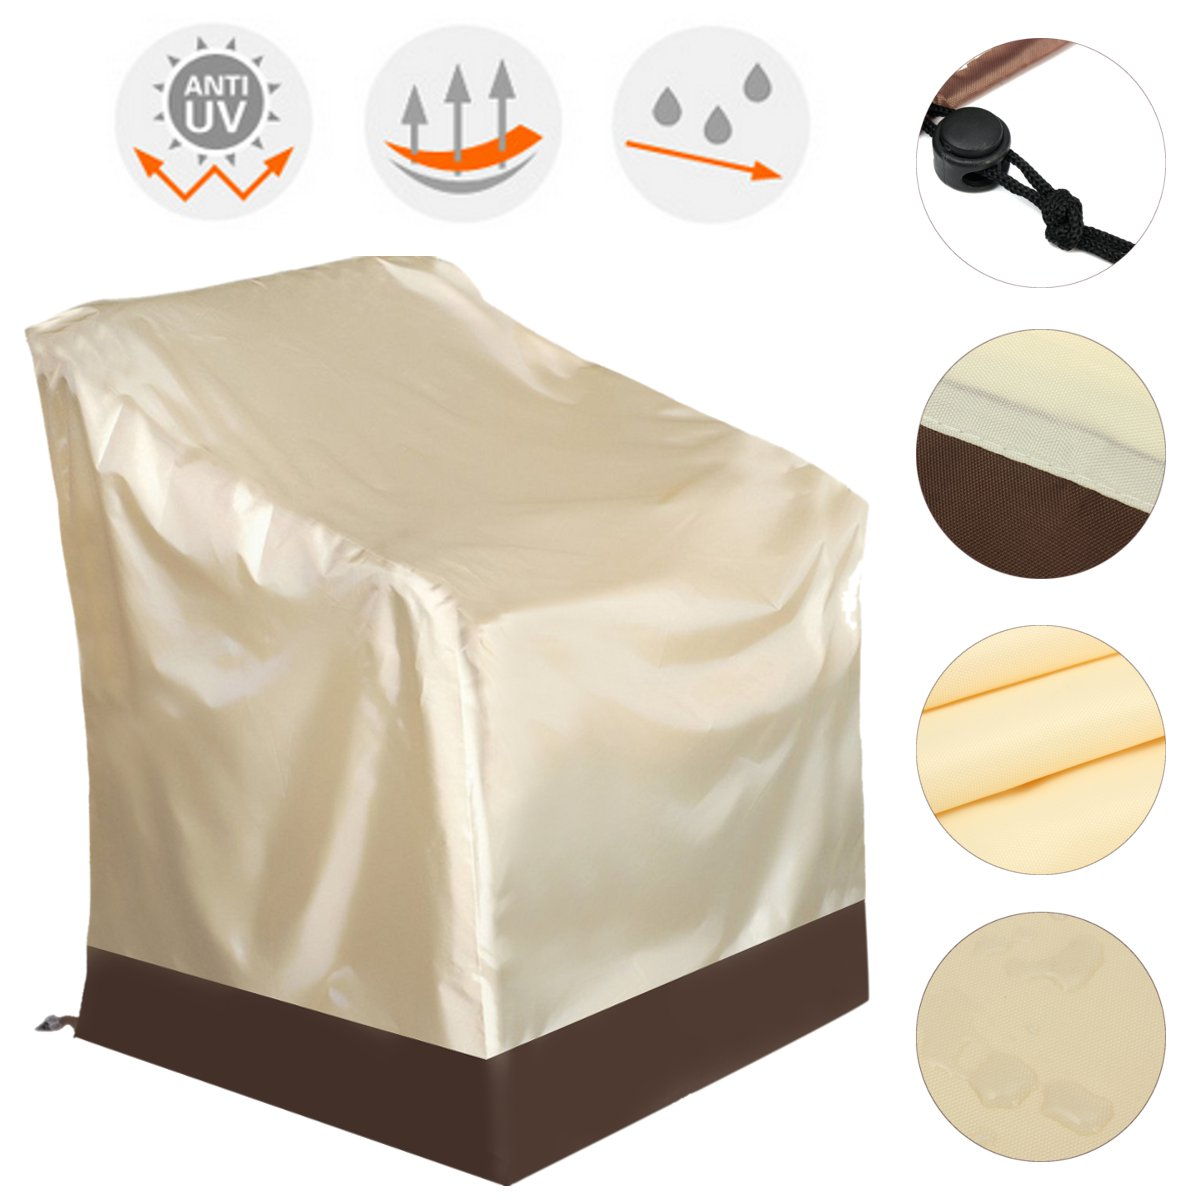 Superbe Meigar High Back Chair Covers Outdoor Yard Furniture Protection Accessories  Veranda Patio Rocking Chair Cover   Durable And Water Resistant Patio Set  Cover